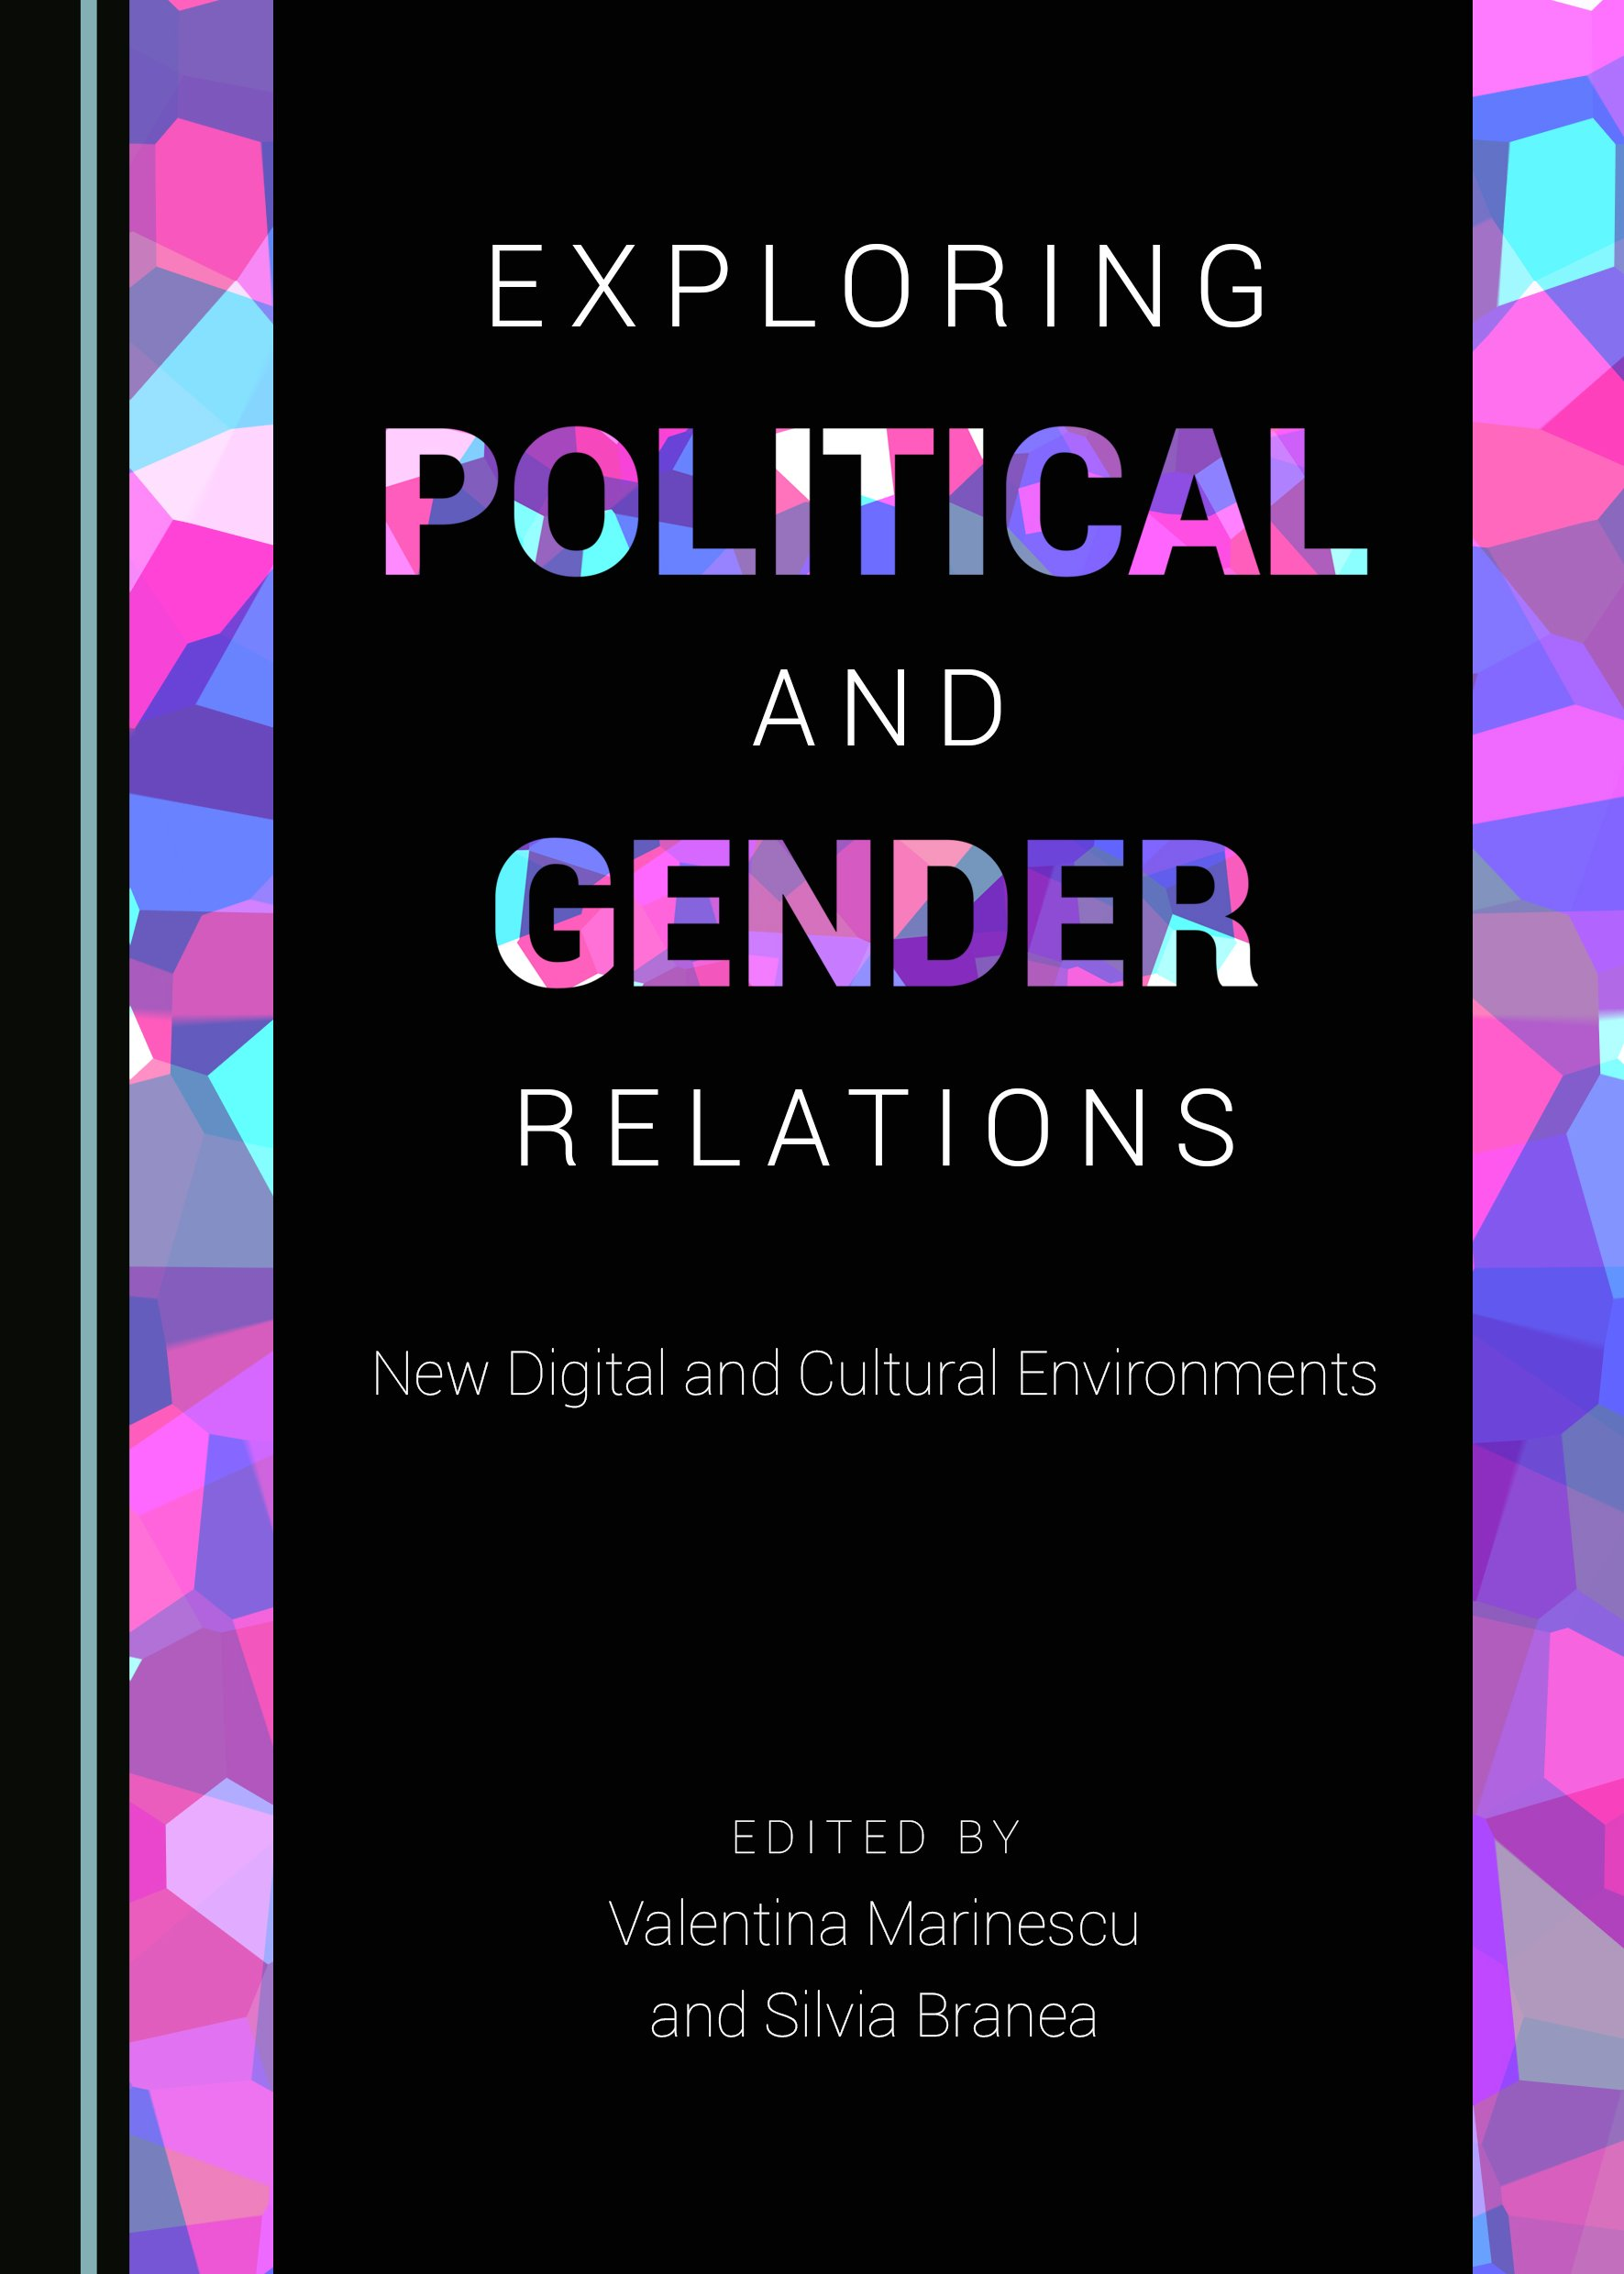 Exploring Political and Gender Relations: New Digital and Cultural Environments